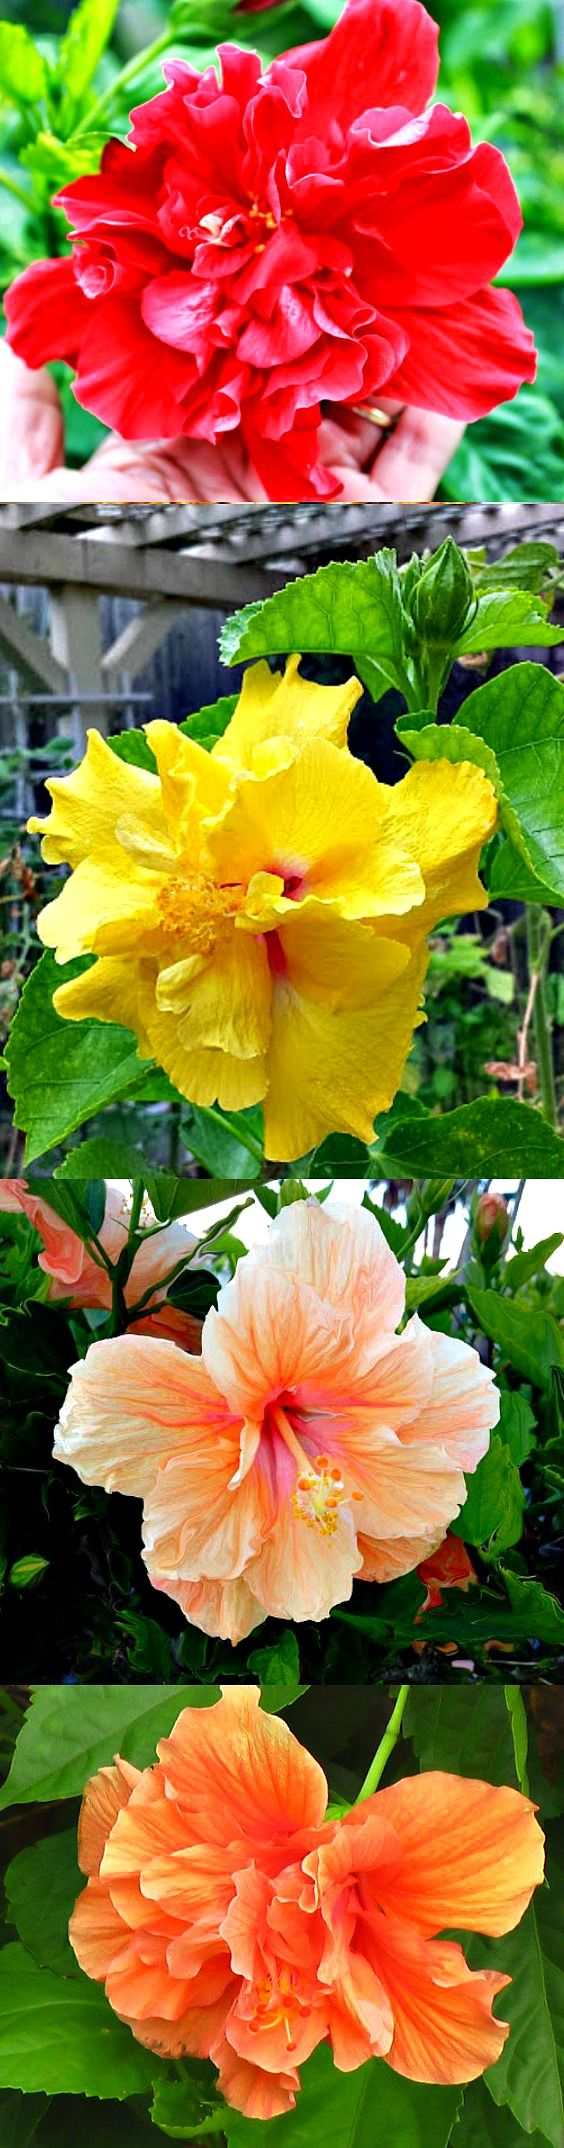 Hibiscuses Come In A Floral Rainbow Of Colors Color Meanings Differ